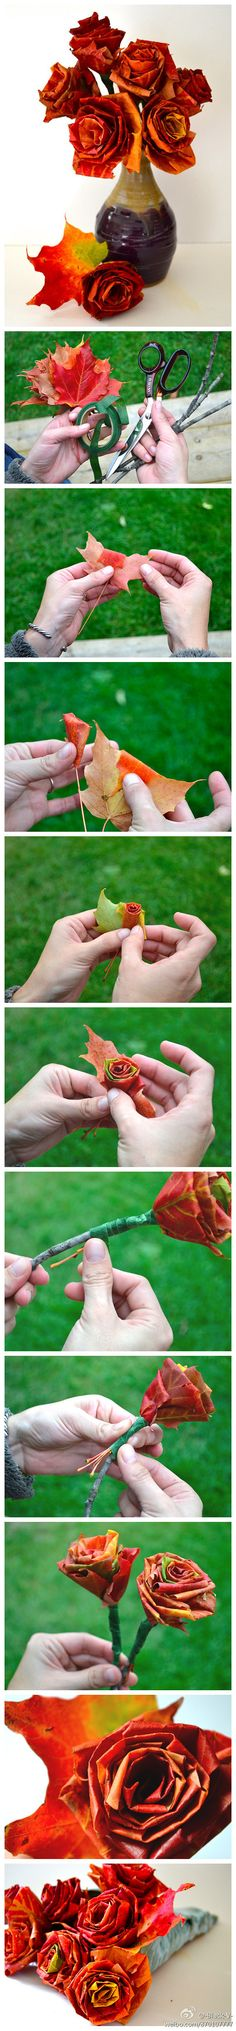 roses from fallen maple leaves